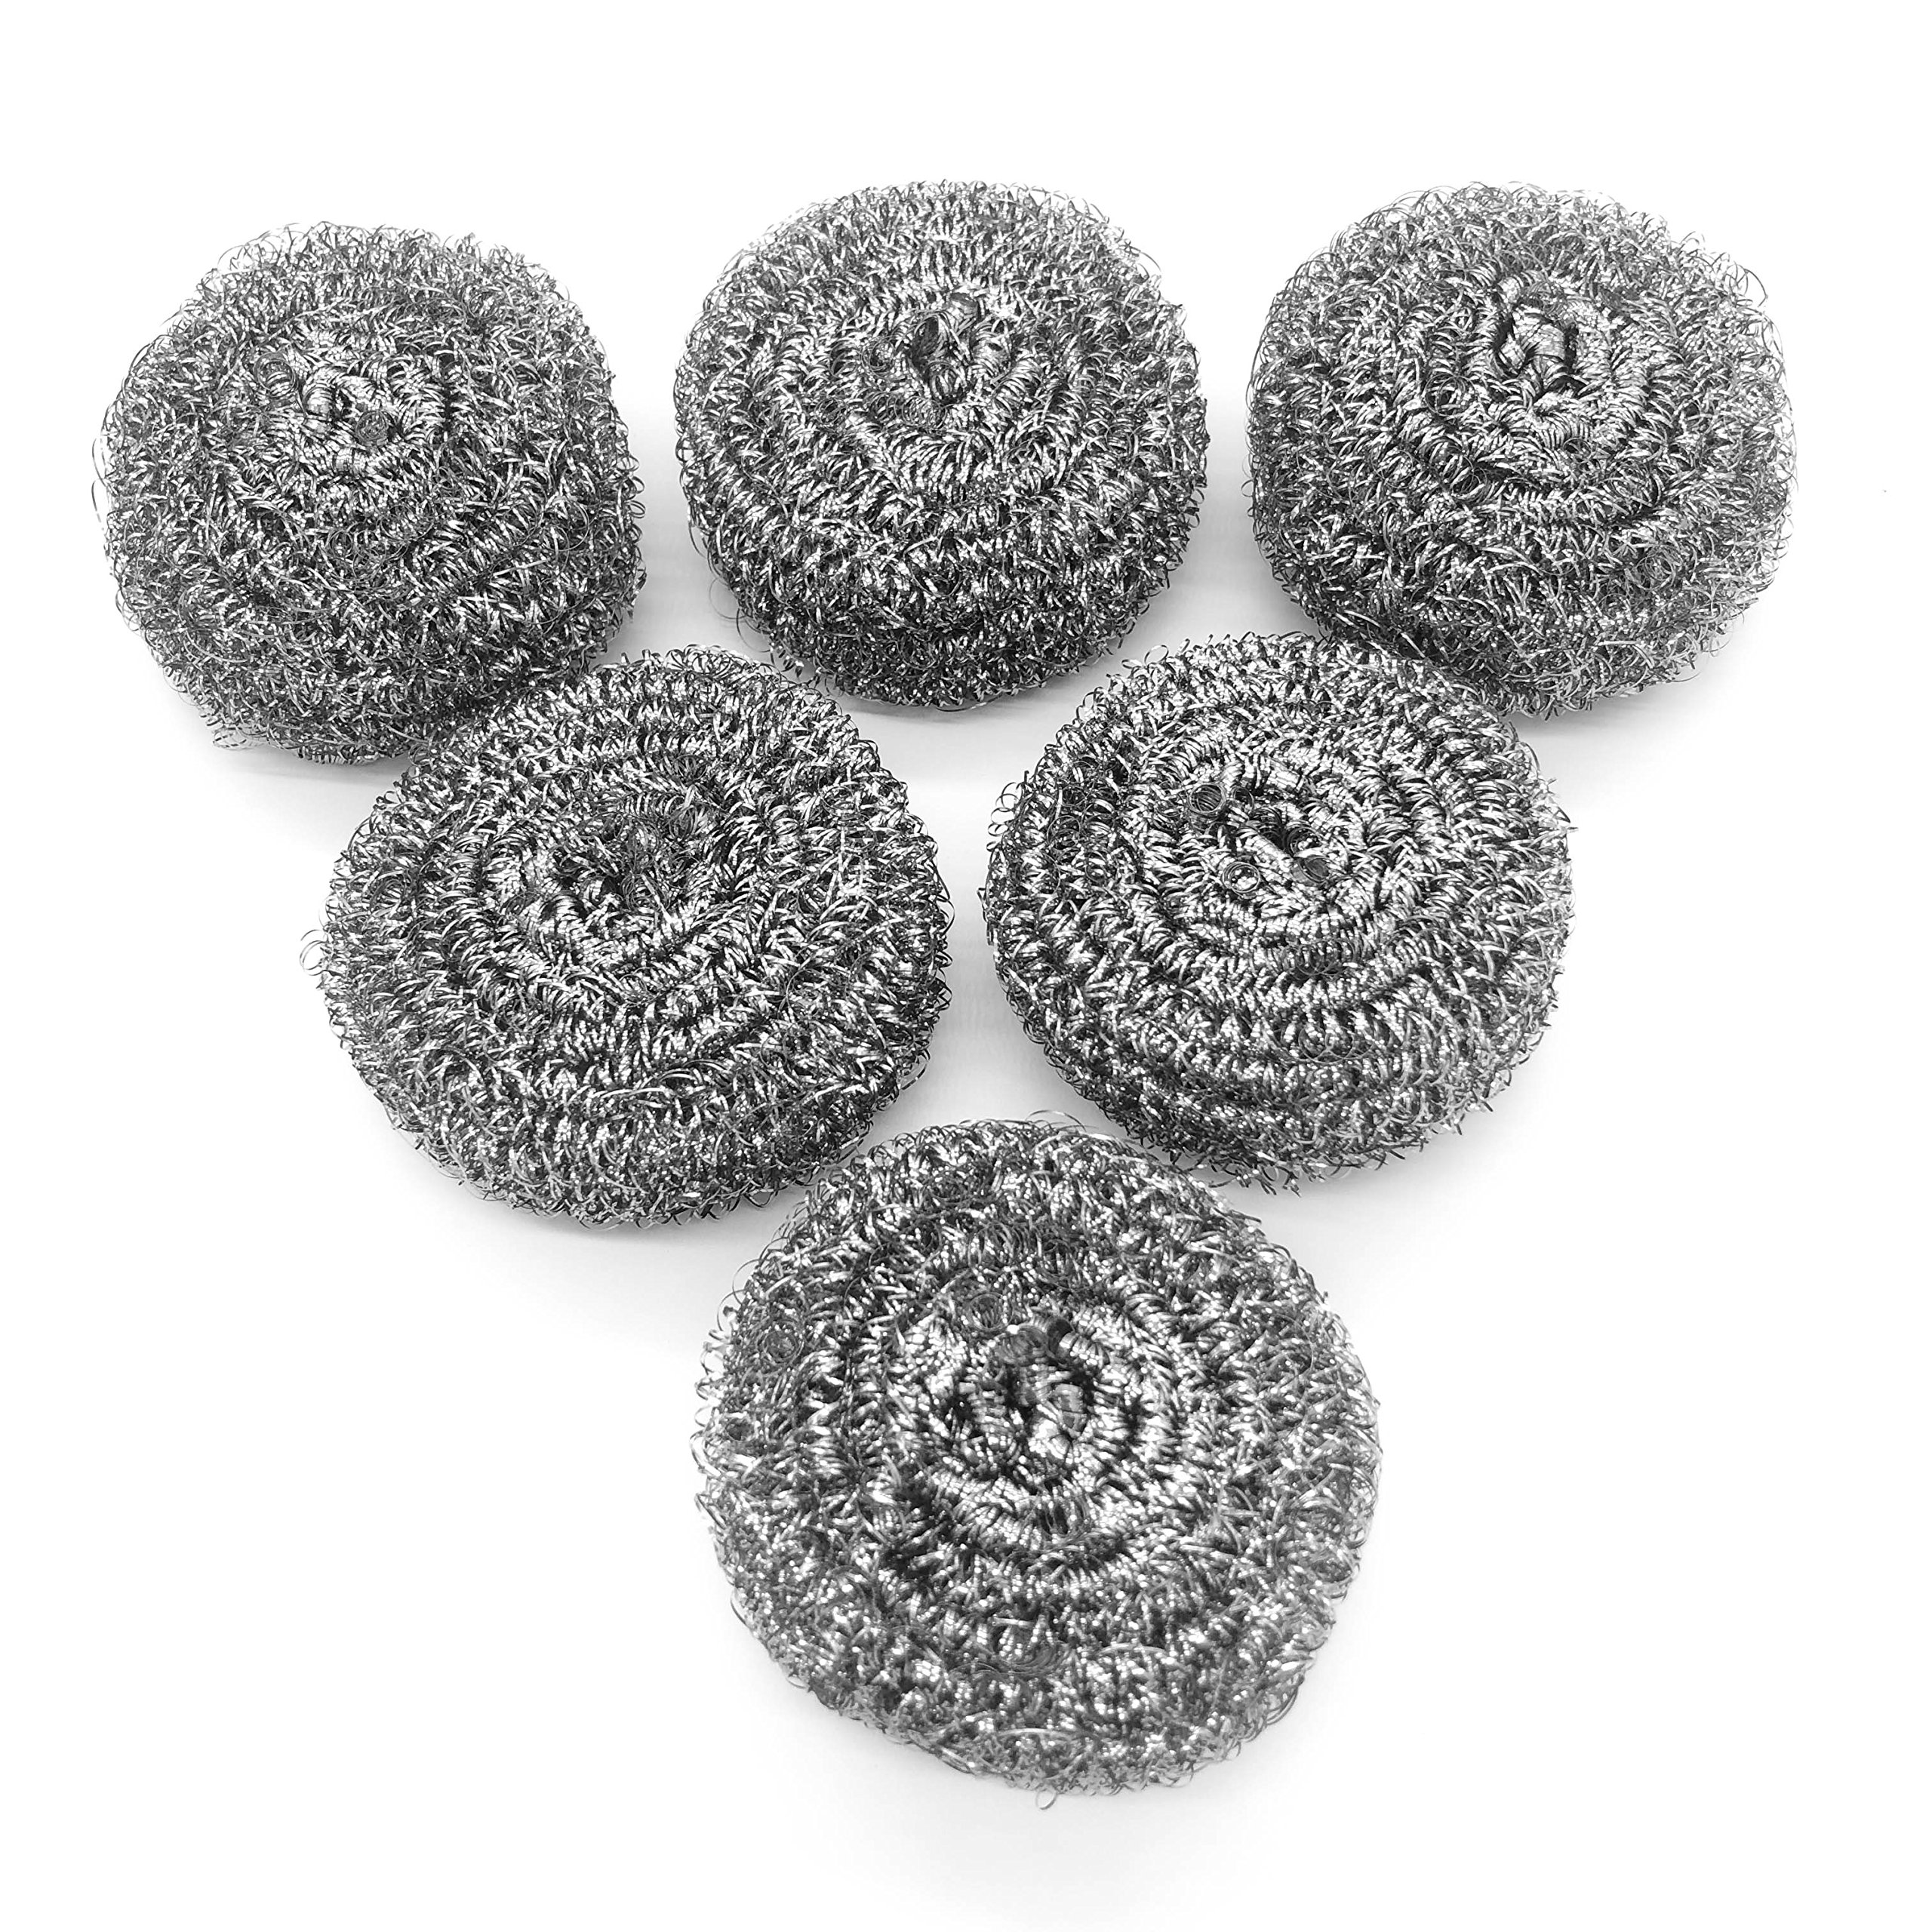 6 Pack Stainless Steel Sponges, Scrubbing Scouring Pad, Steel Wool Scrubber for Kitchens, Bathroom and More